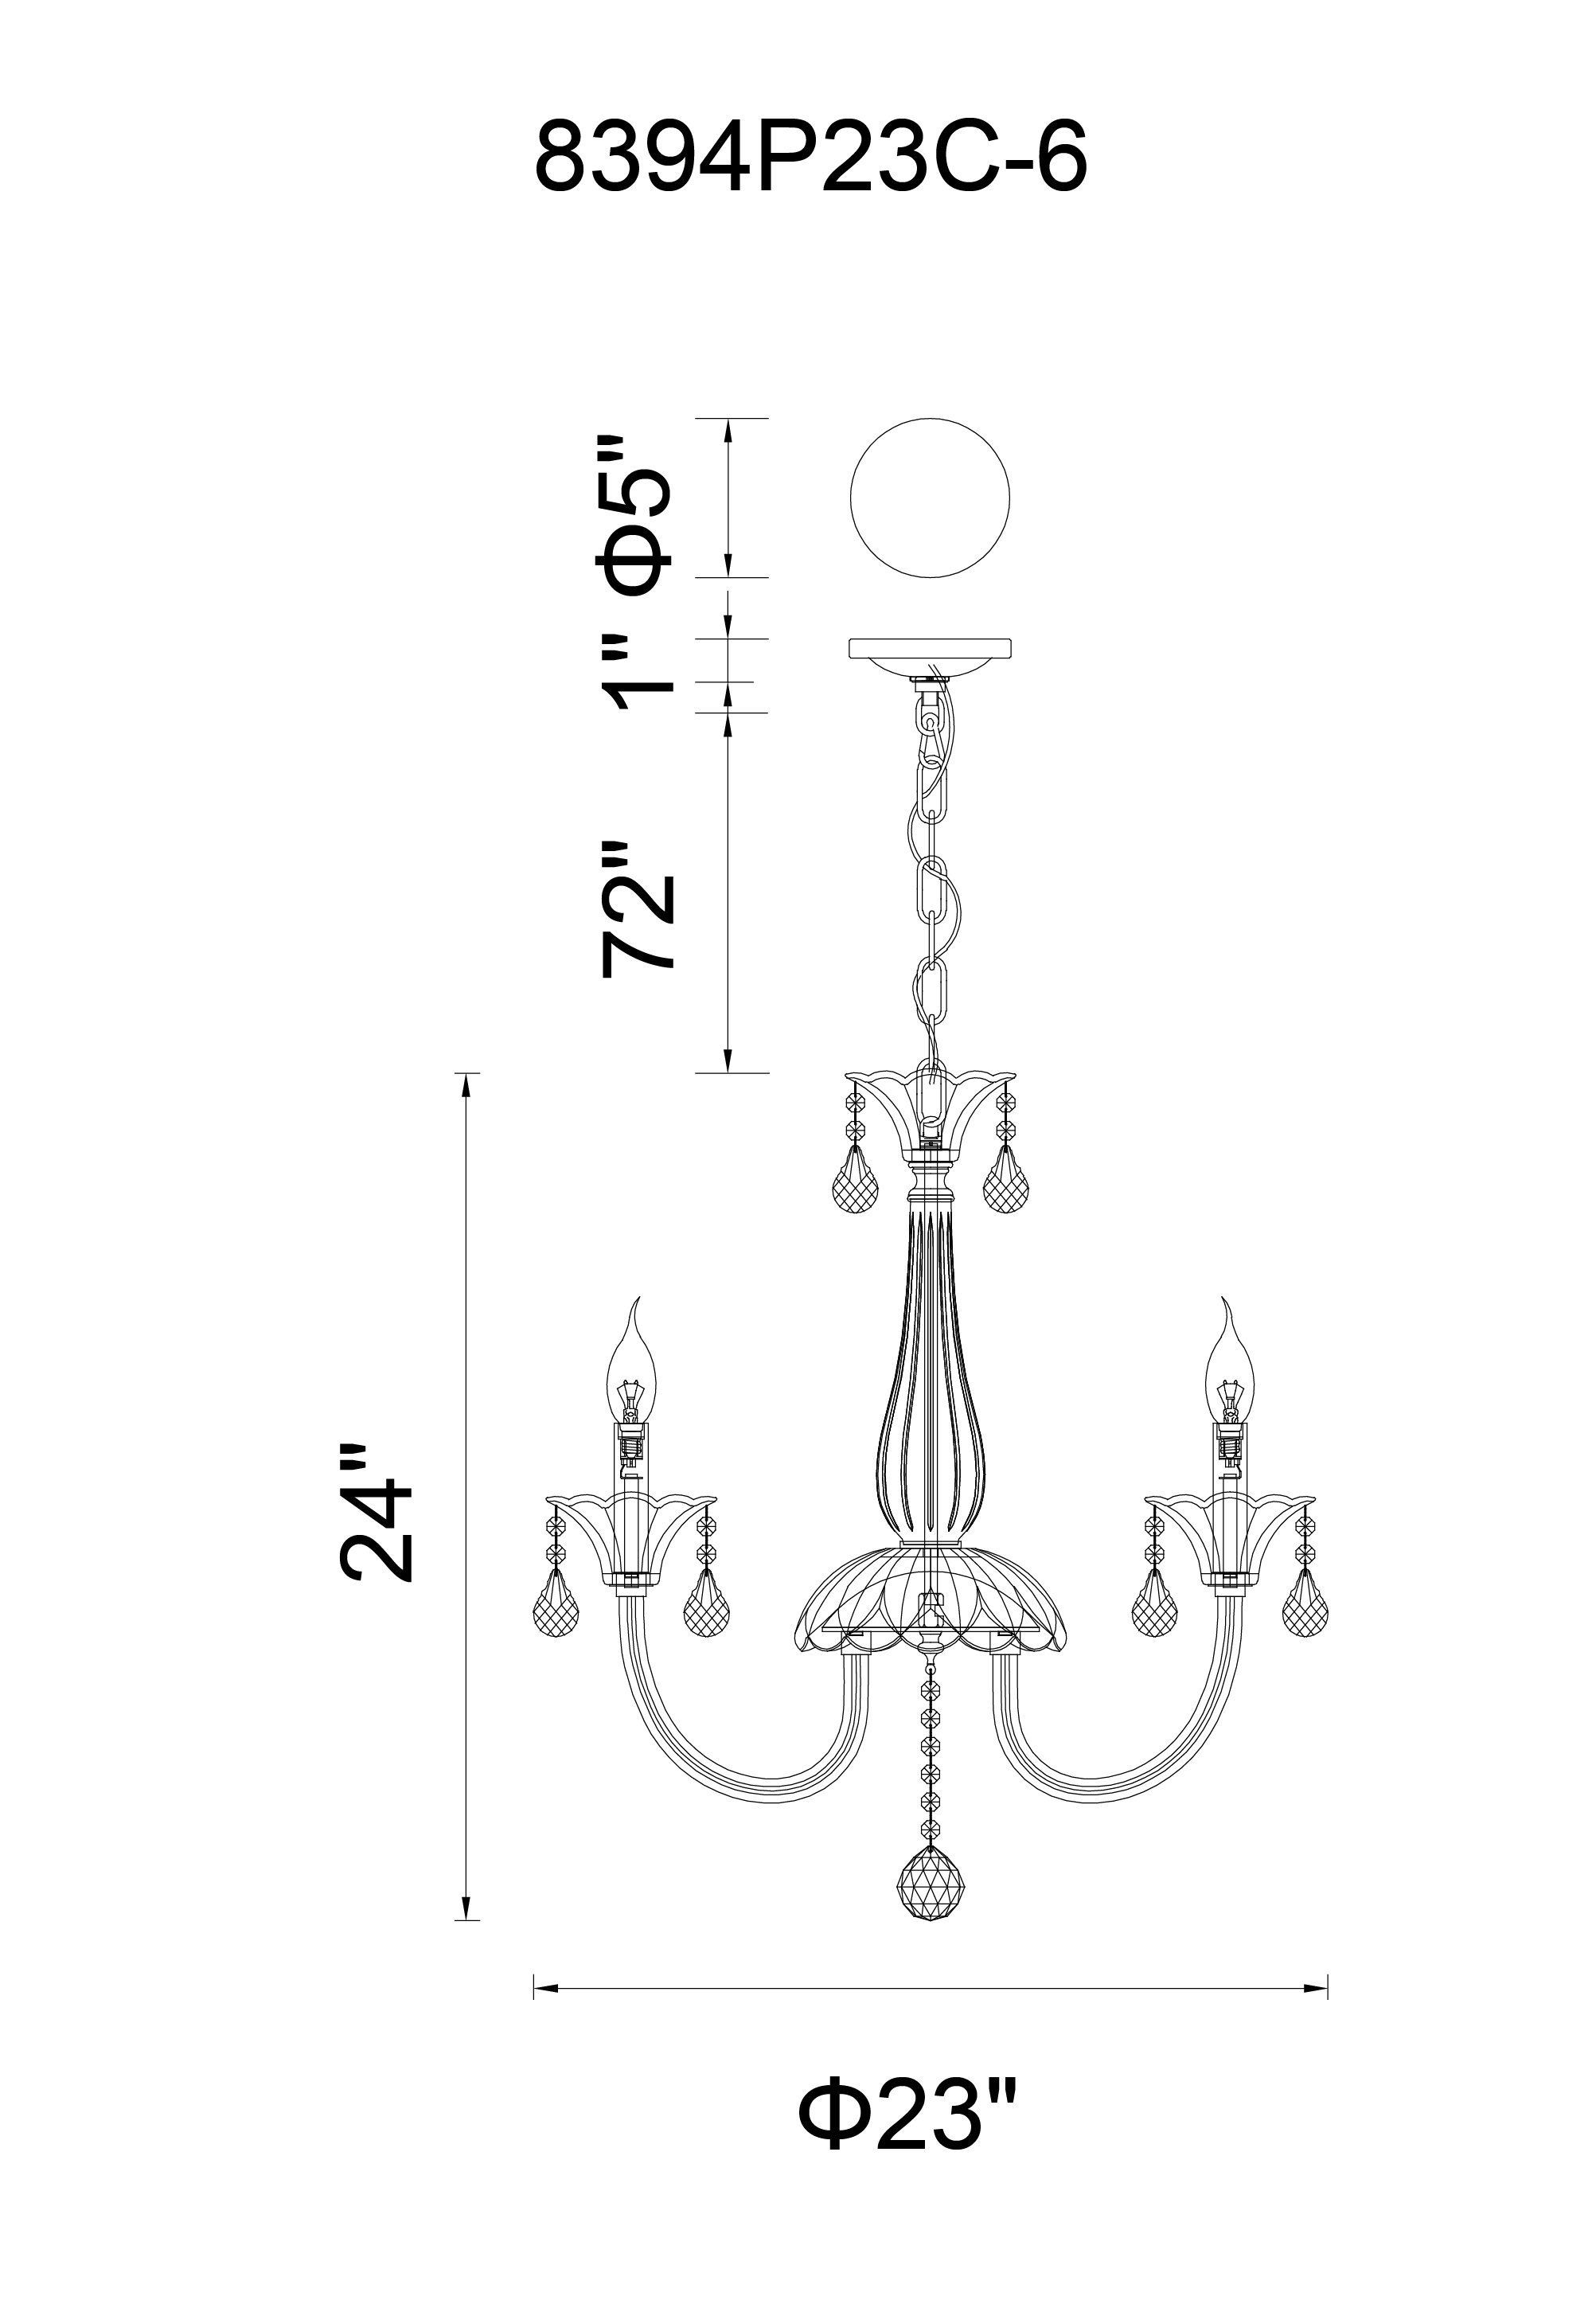 CWI Lighting Melanie 6 Light Up Chandelier With Chrome Finish Model: 8394P23C-6 Line Drawing